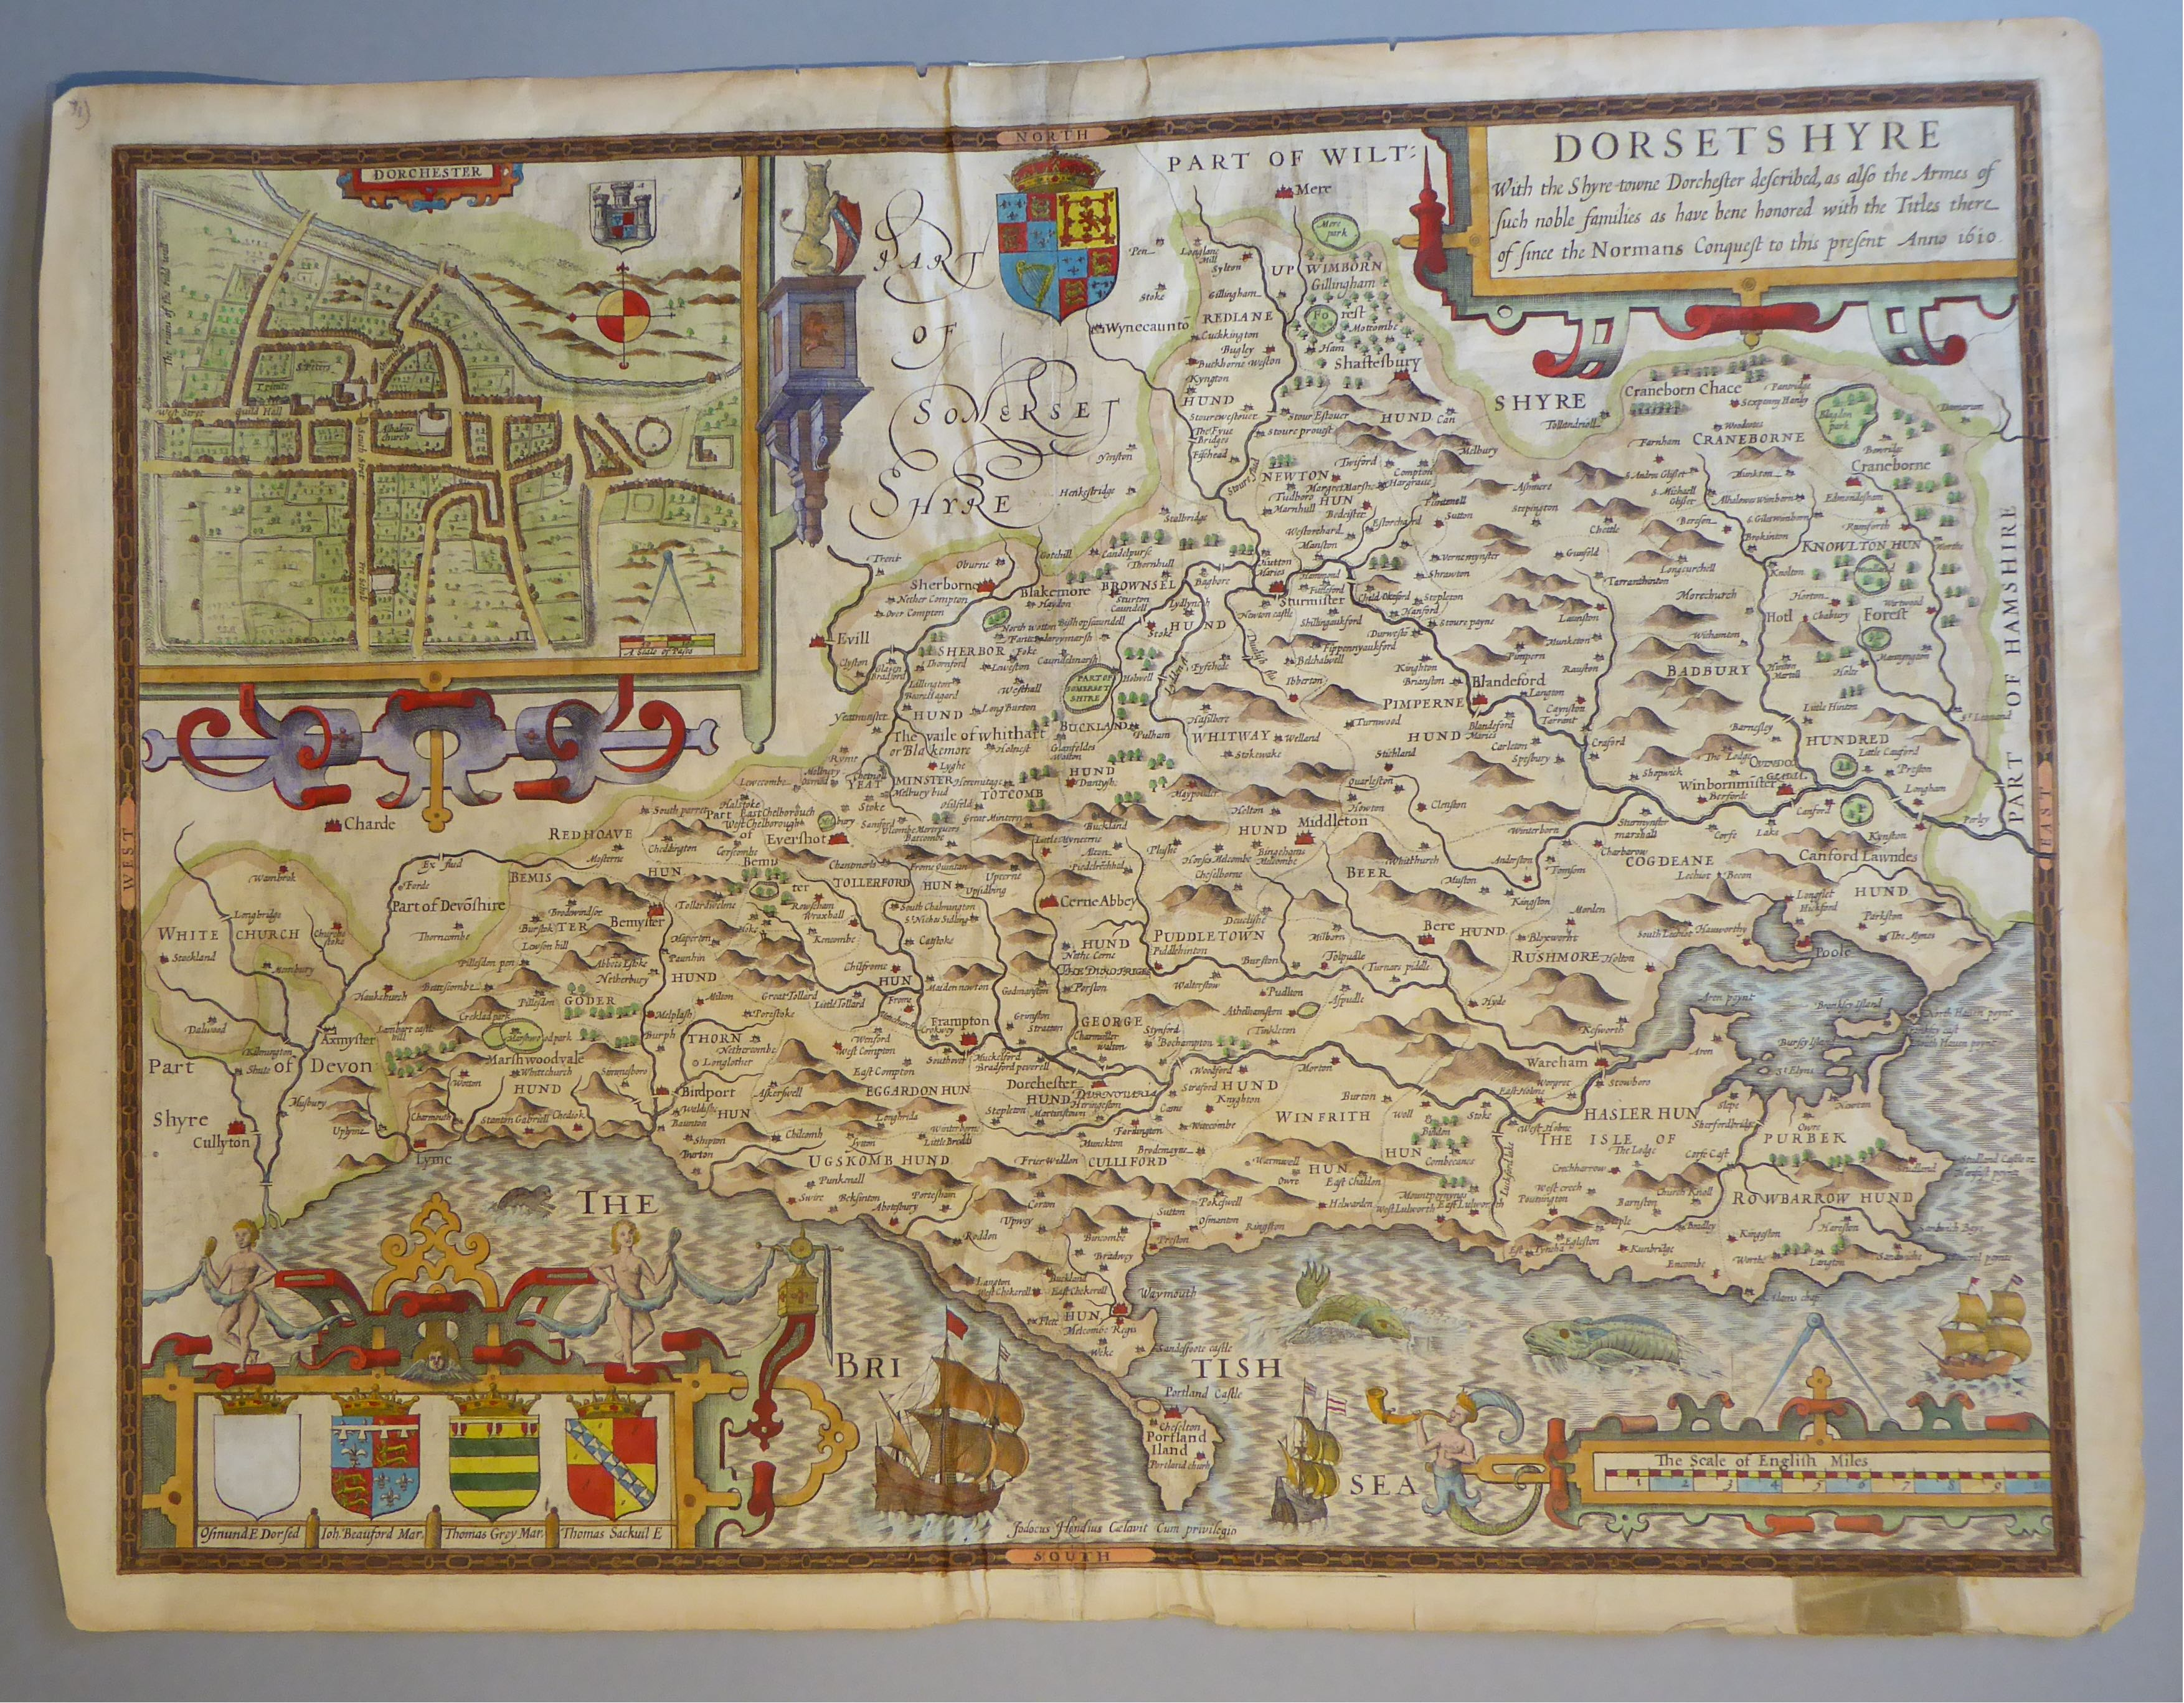 Lot 26 - A C17th hand coloured copper engraved map of Dorsetshire by John Speed, c1627